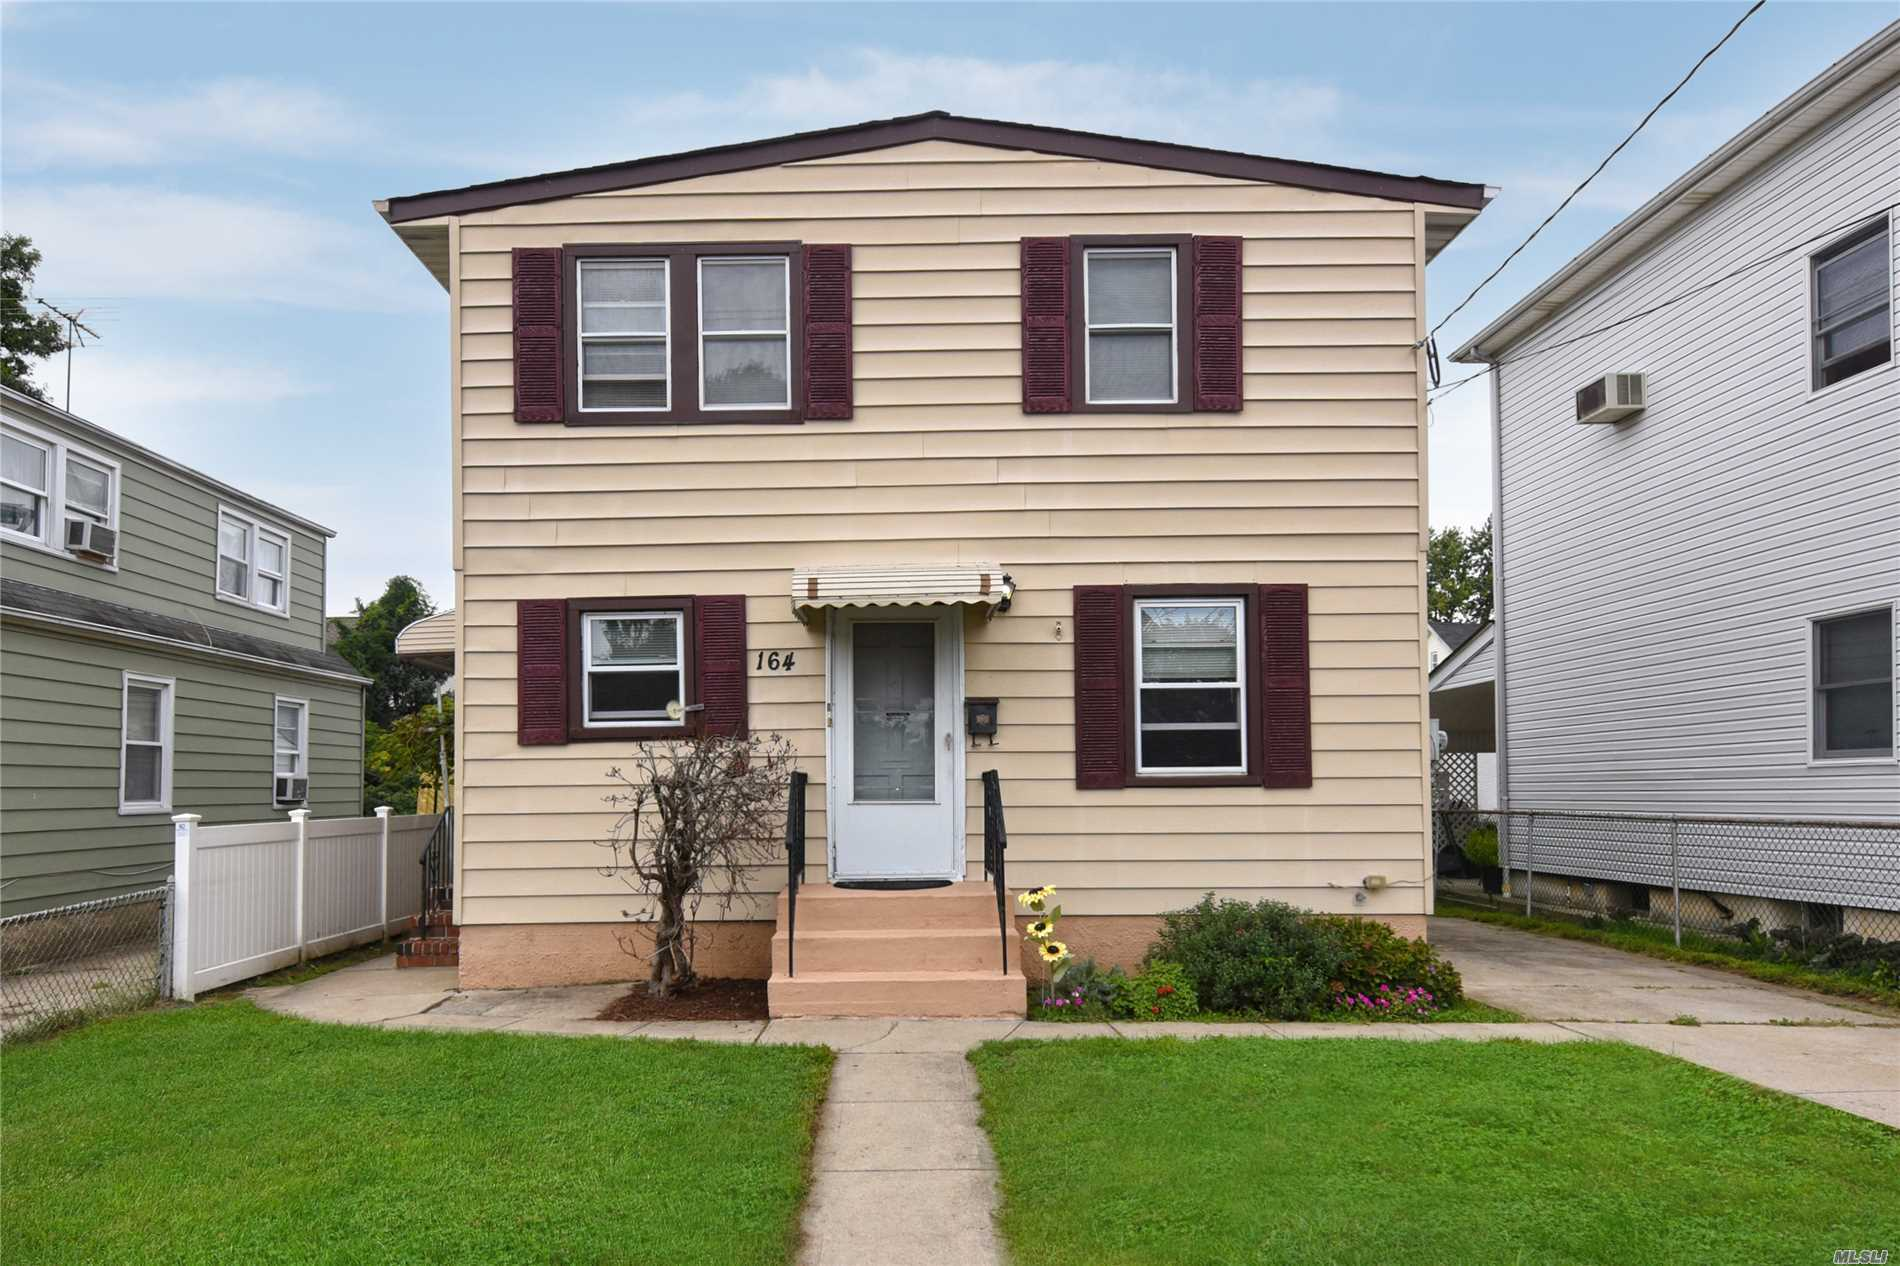 Legal 2 Family With 5 Large Bedrooms, 2 Eat In Kitchen's, 3 Full Bathrooms, Full Basement With Private Yard. Sitting On A Quiet Tree Lined Dead End Street.